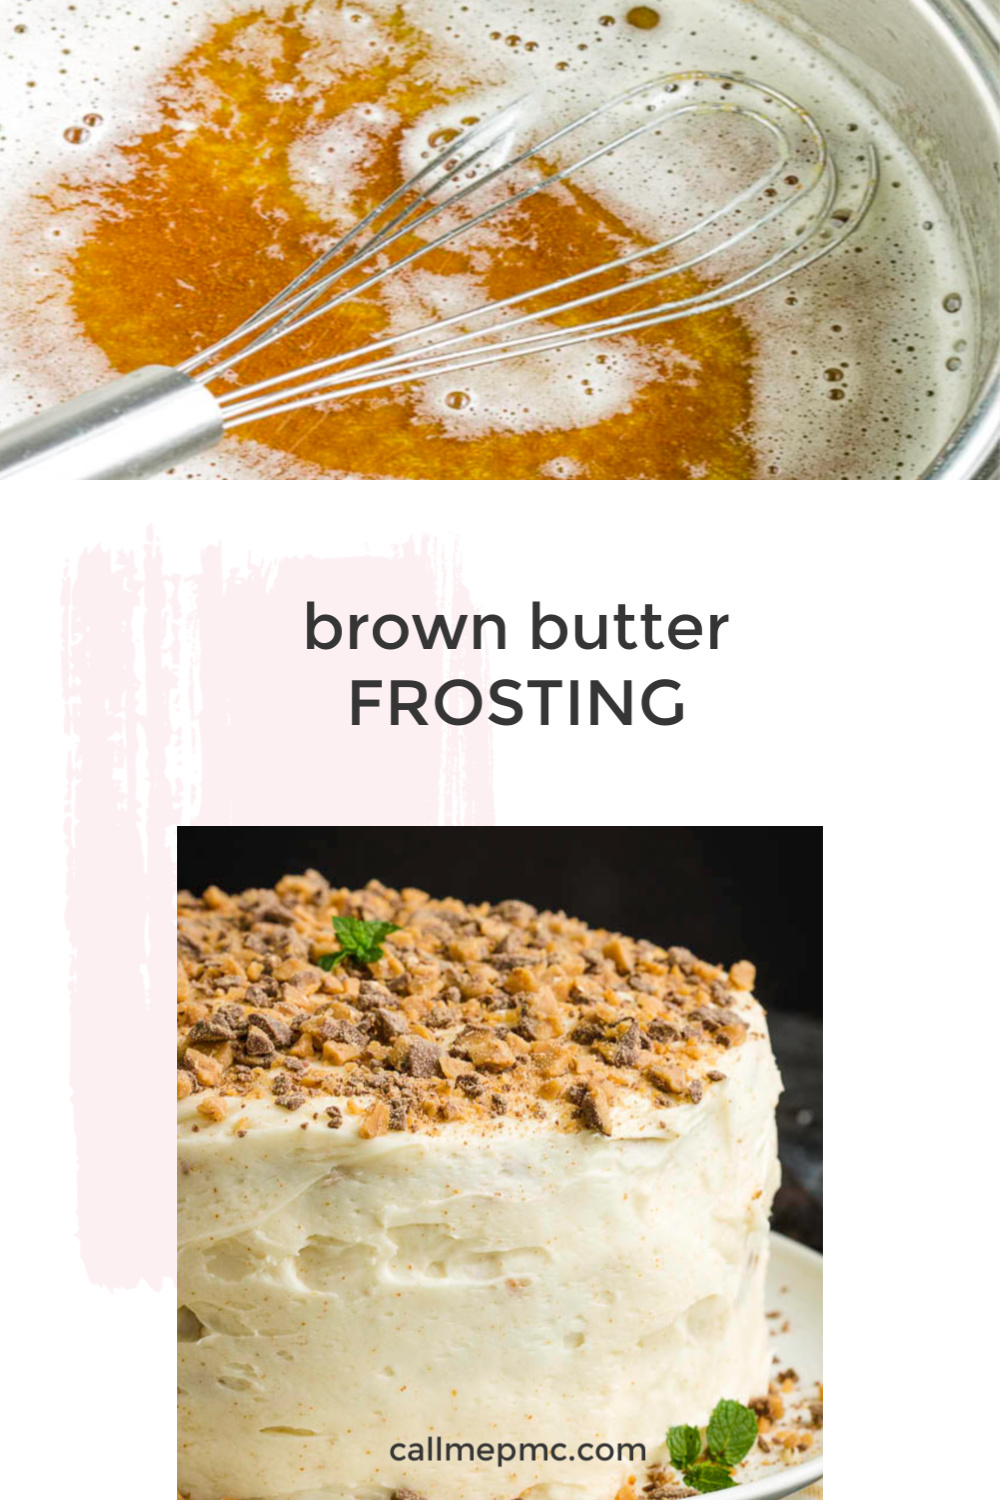 Brown Butter Frosting Recipe is flavored with brown butter for a delicious frosting that's perfect on cakes, cupcakes, brownies, and more! #frosting #recipe #icing #brownbutter #butter